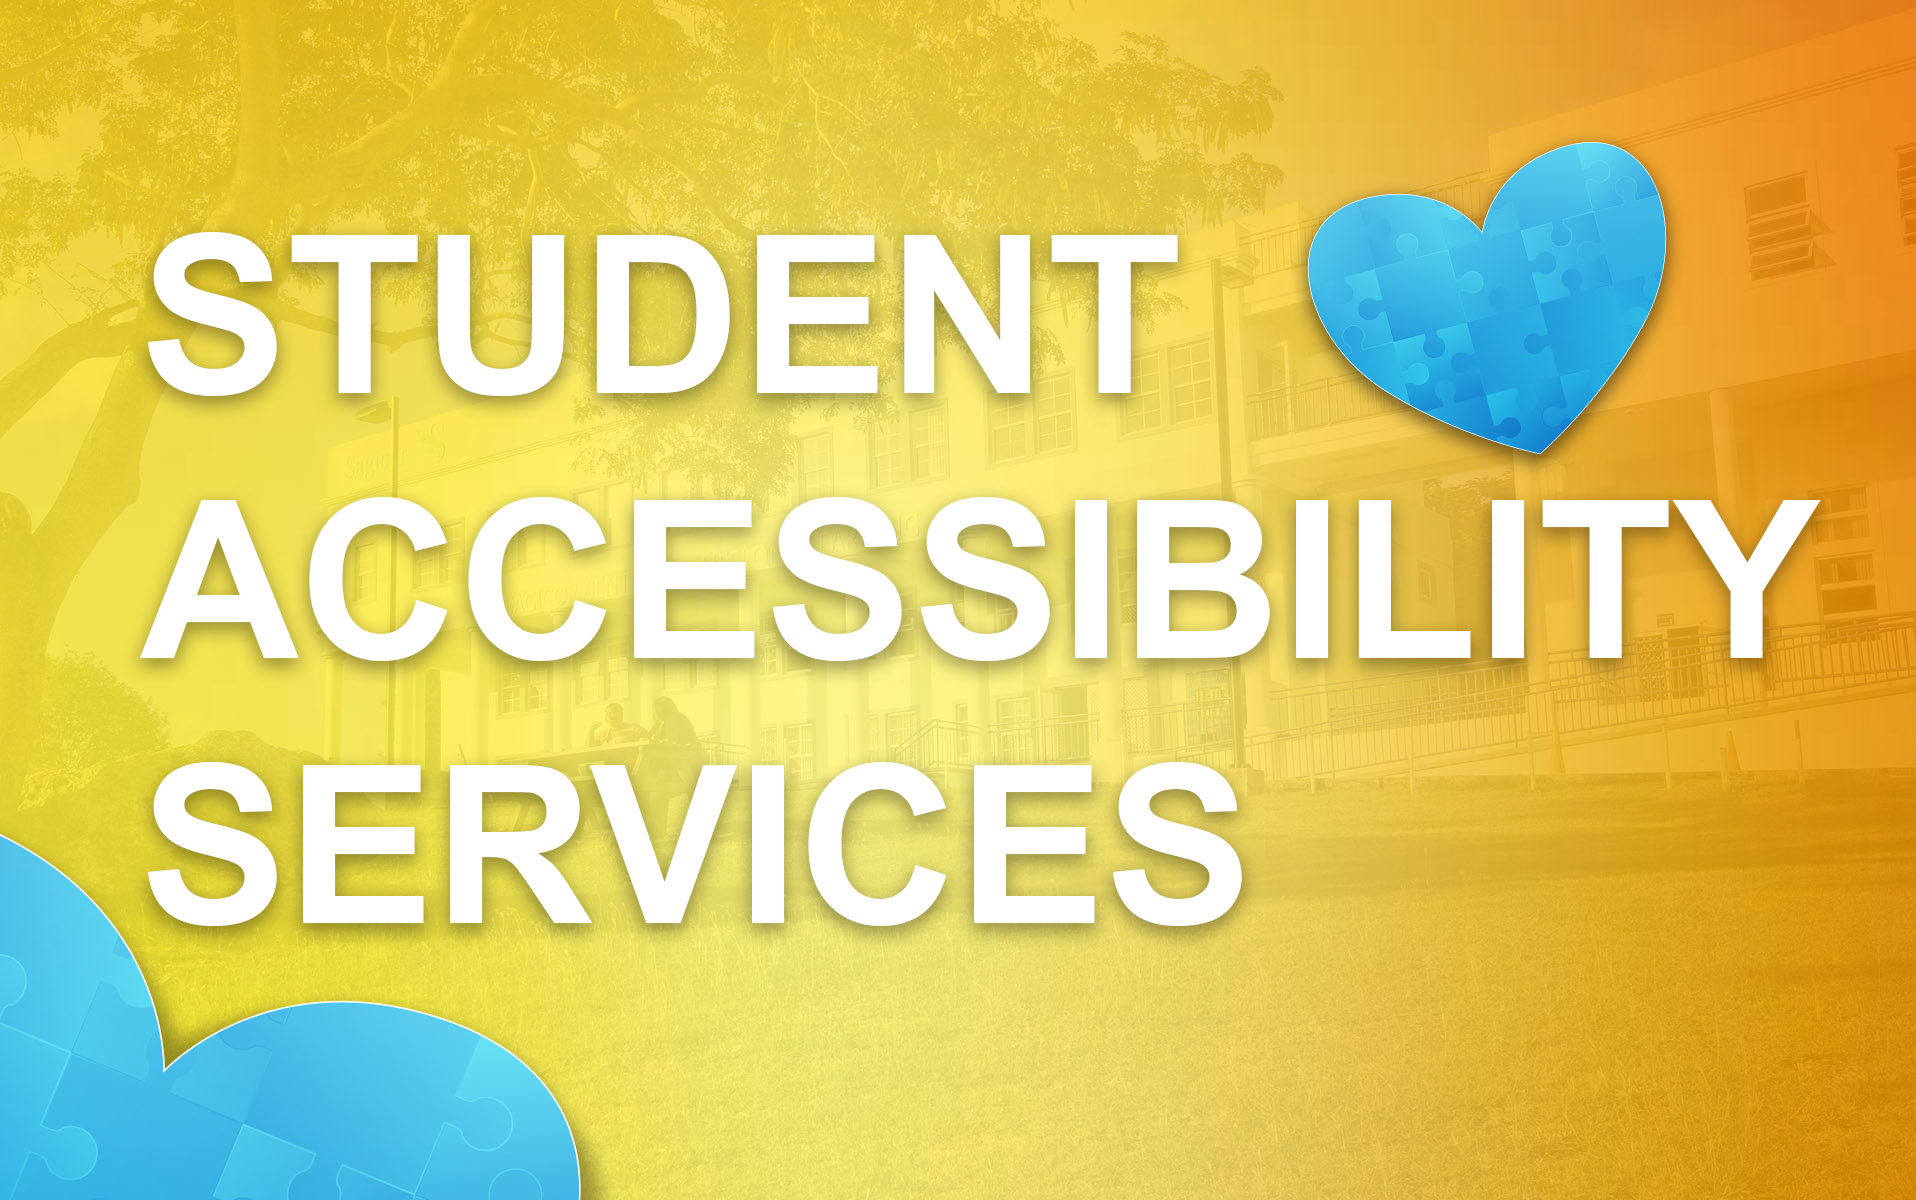 welcome - student accessability services